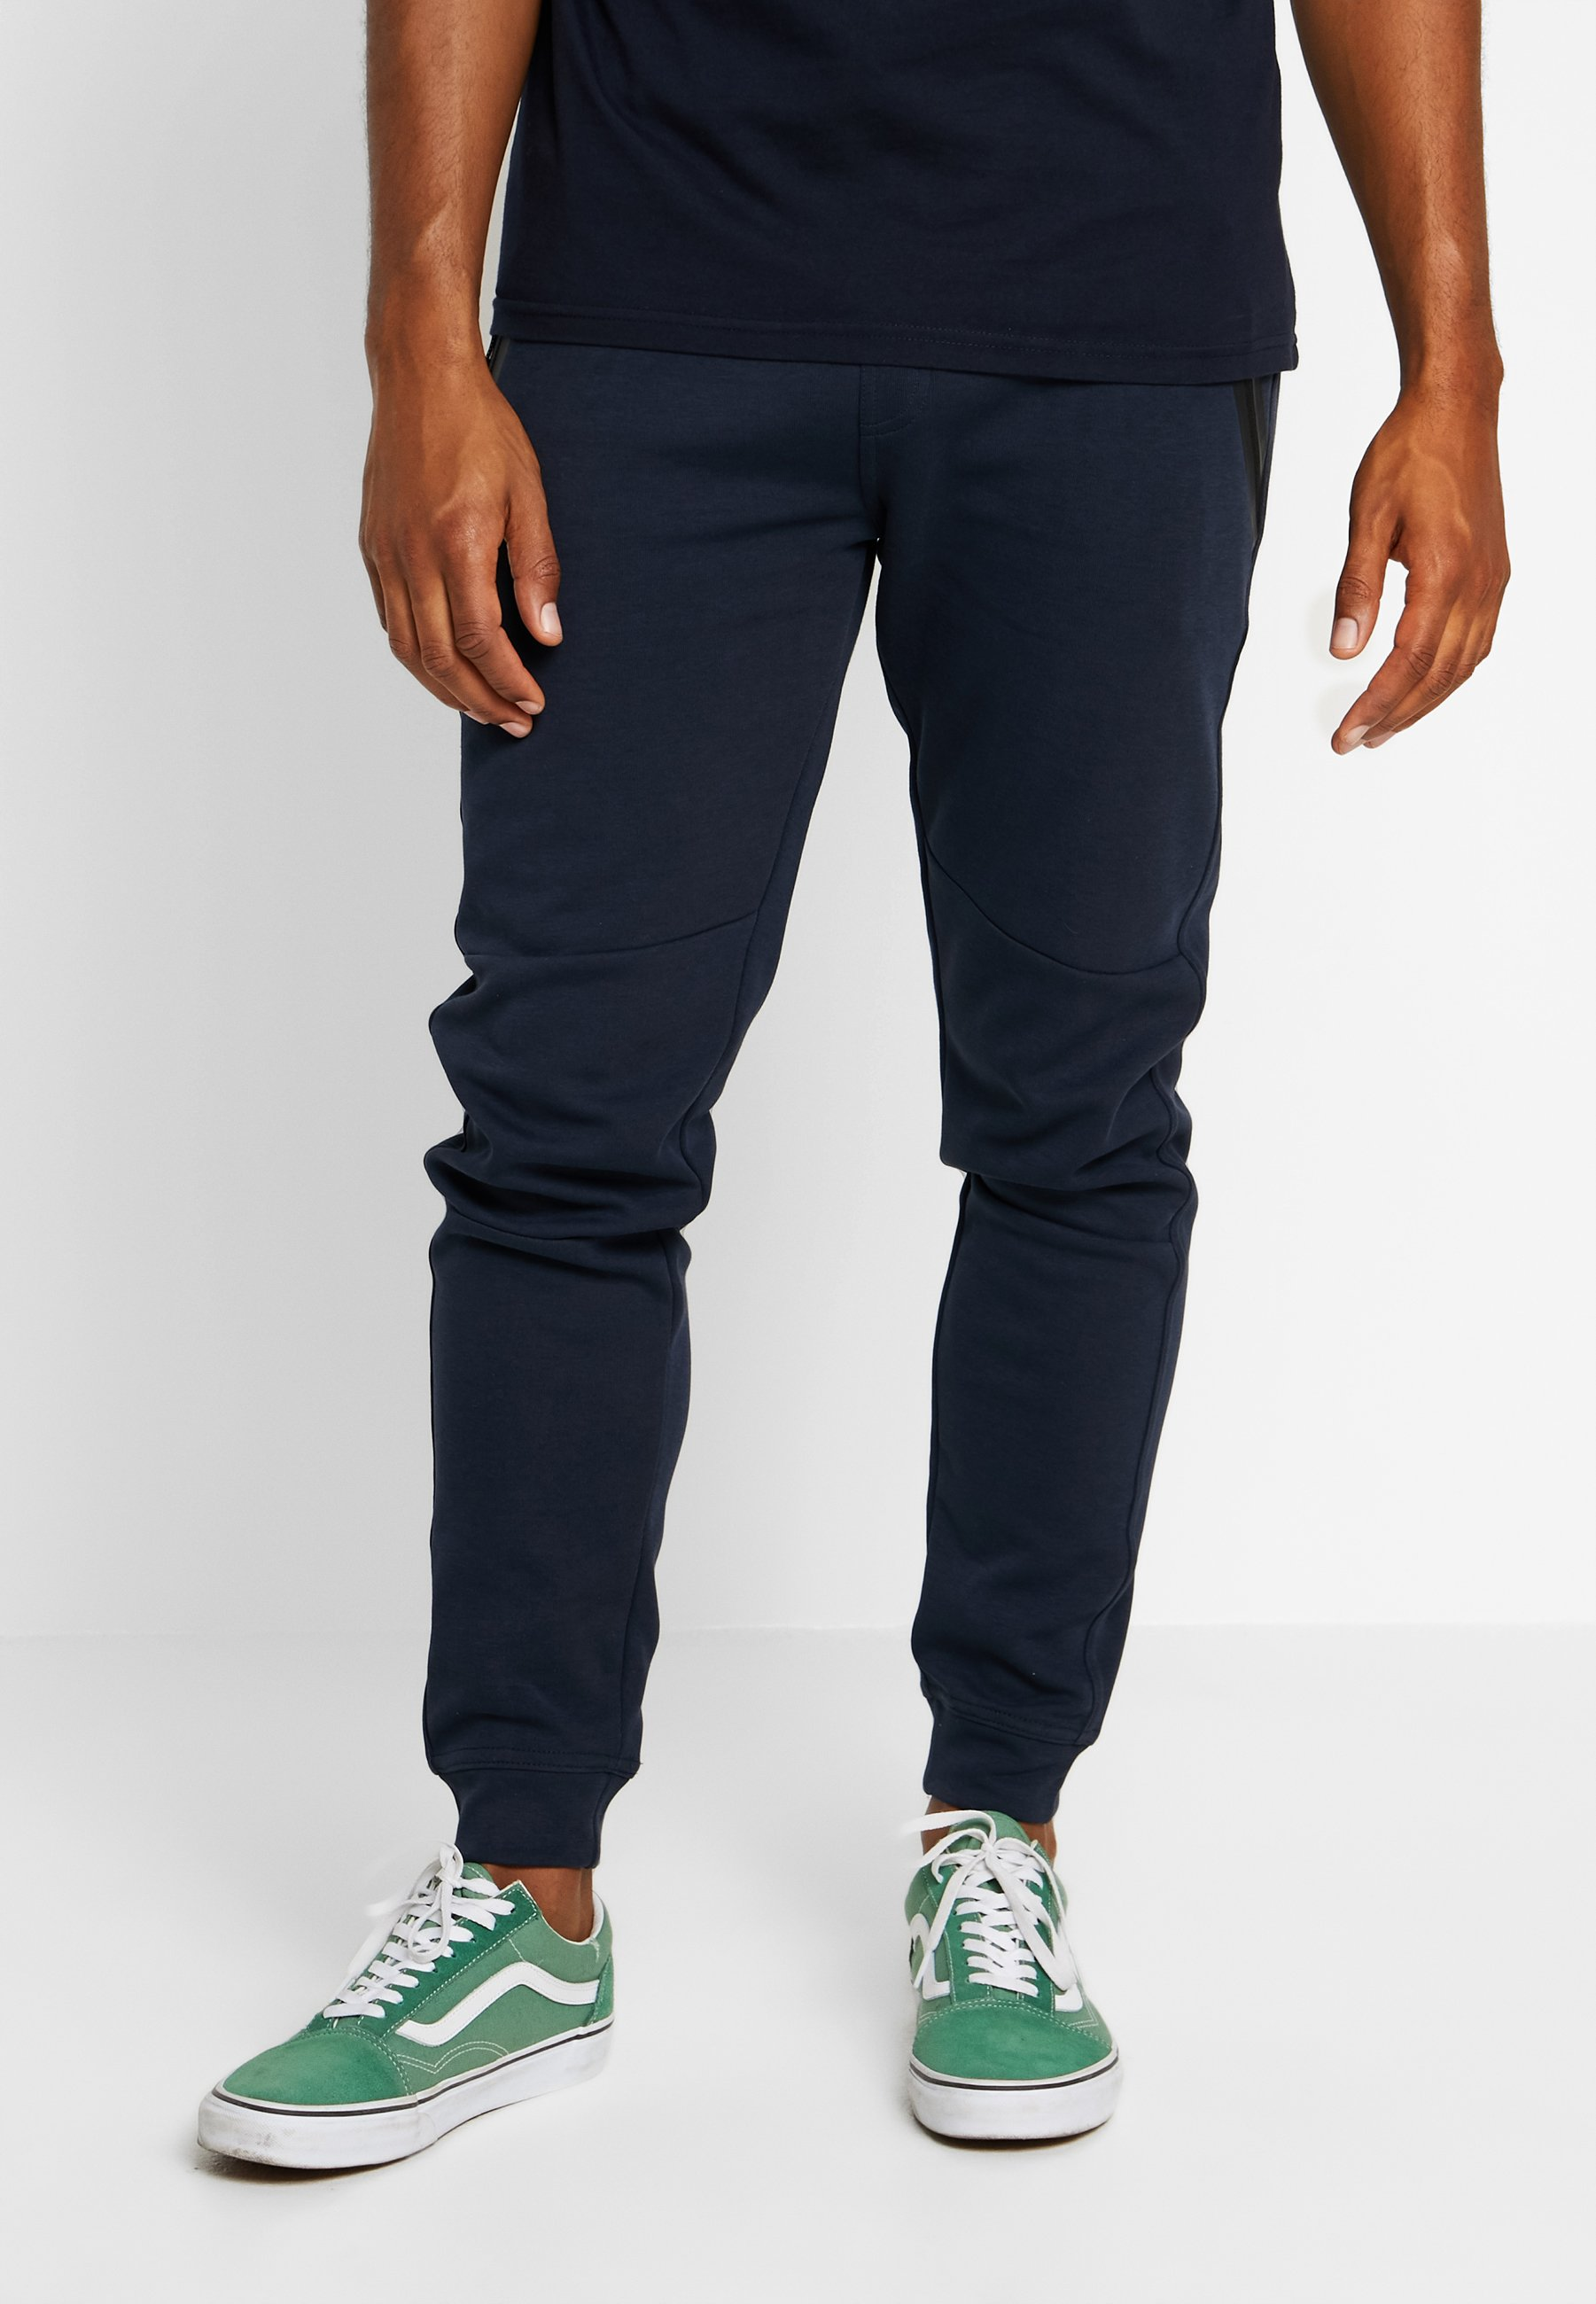 Survêtement LaxPantalon Navy Cars Jeans De b76gfy